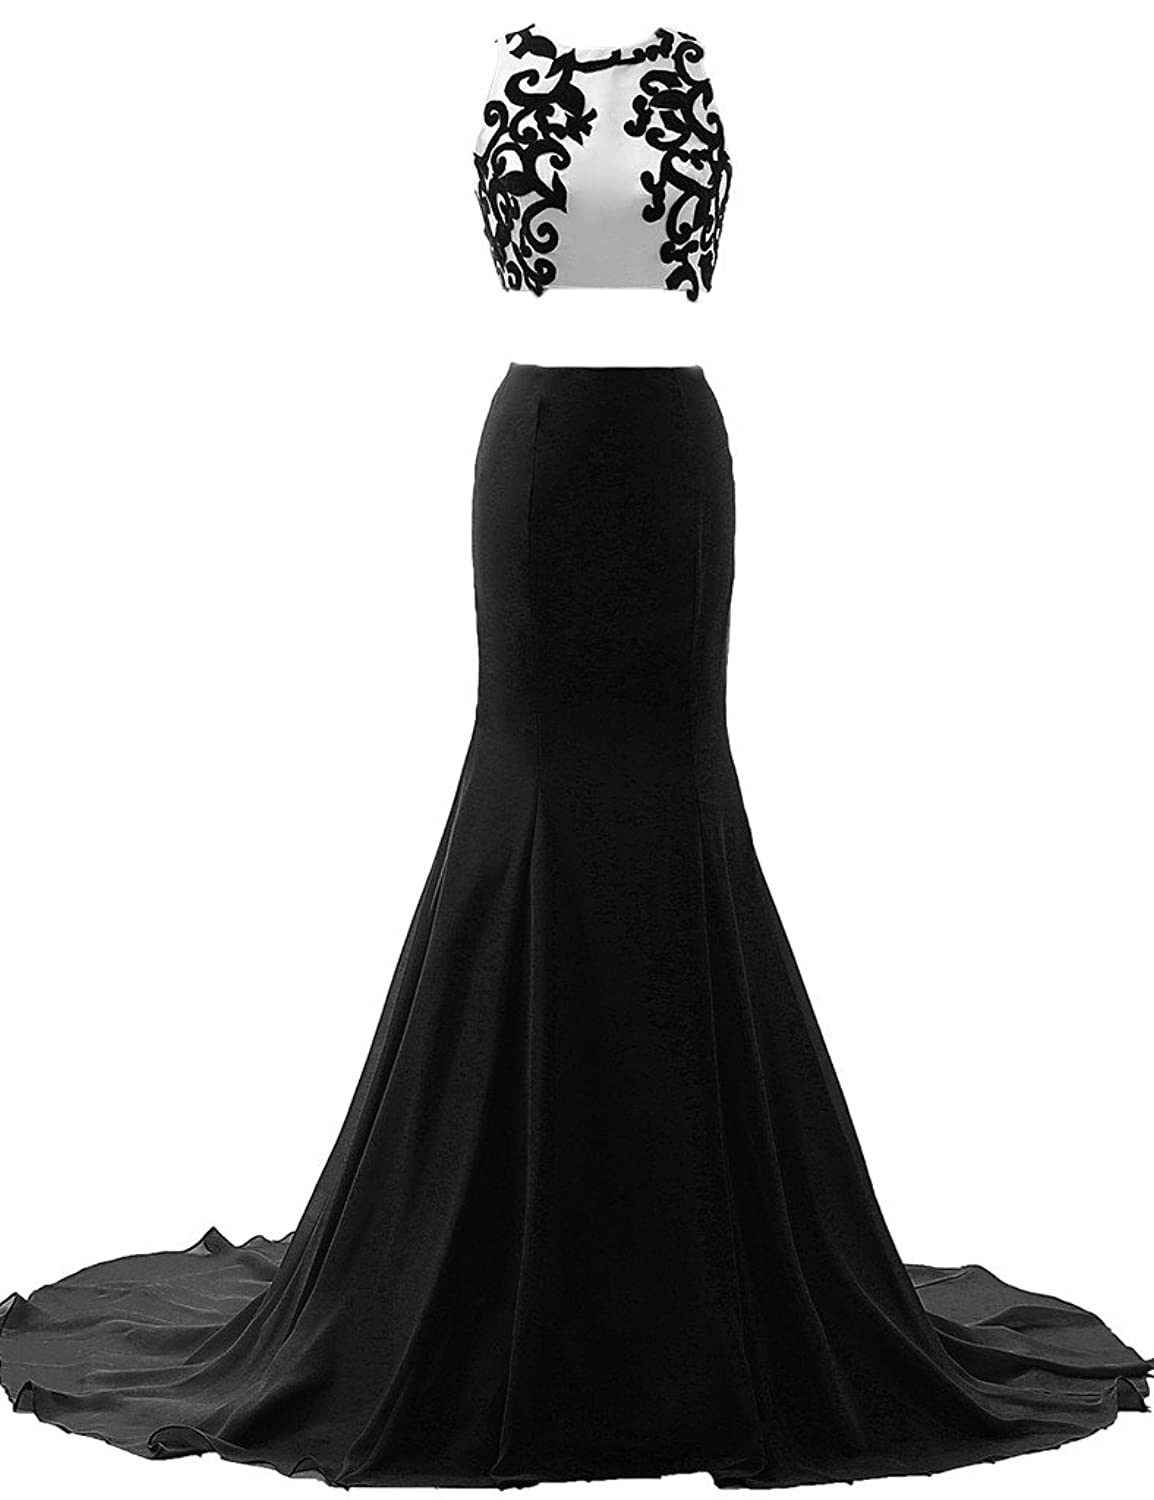 JAEDEN Appliqued Two Piece Evening Dresses Long Sexy Mermaid Prom Party Gown